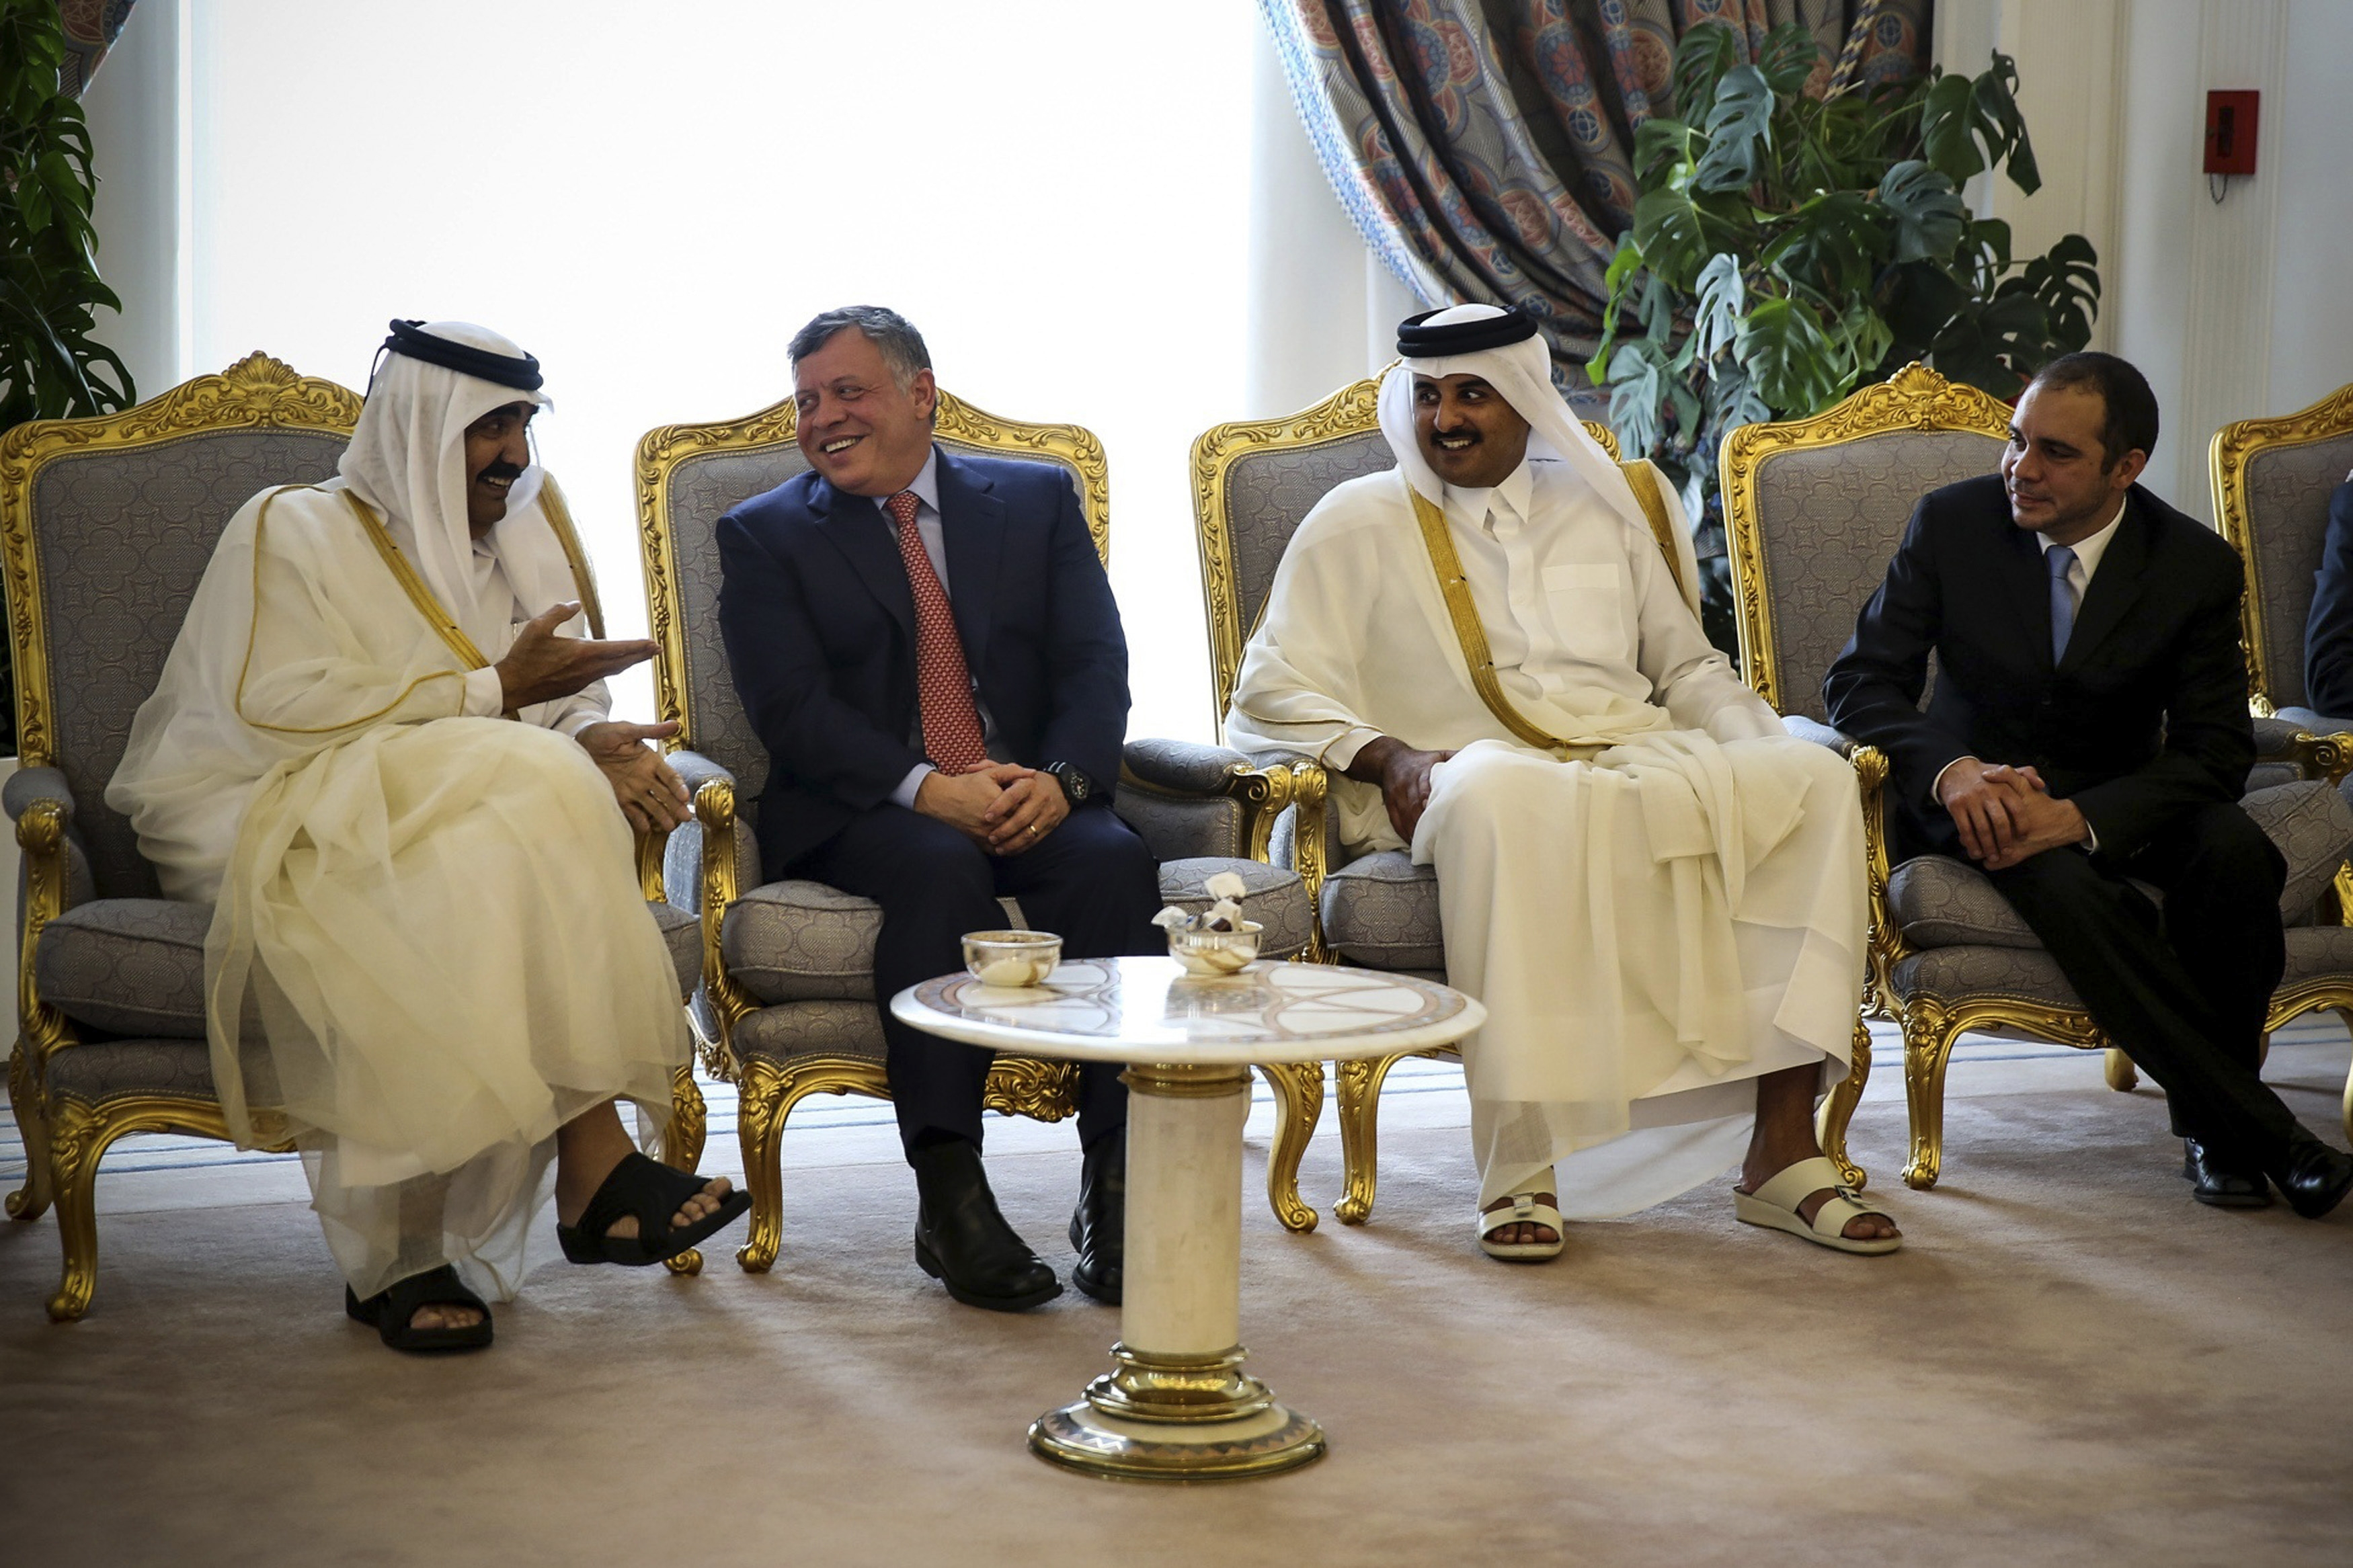 Kings for All Seasons: How the Middle East's Monarchies ...